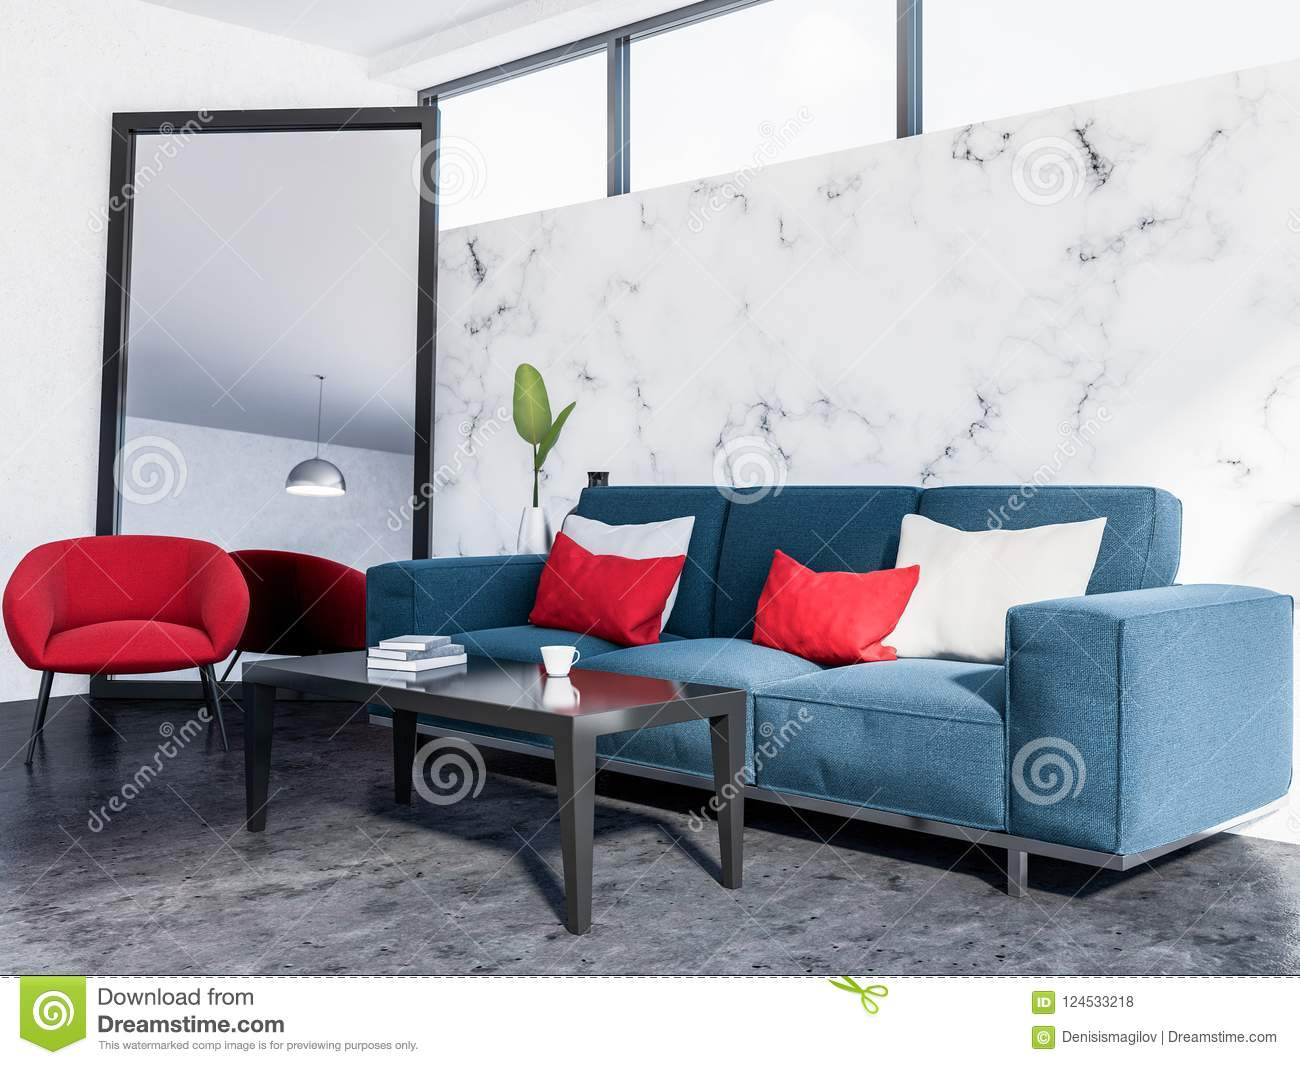 Tremendous Marble Living Room Corner Blue Sofa Red Armchair Stock Interior Design Ideas Oxytryabchikinfo